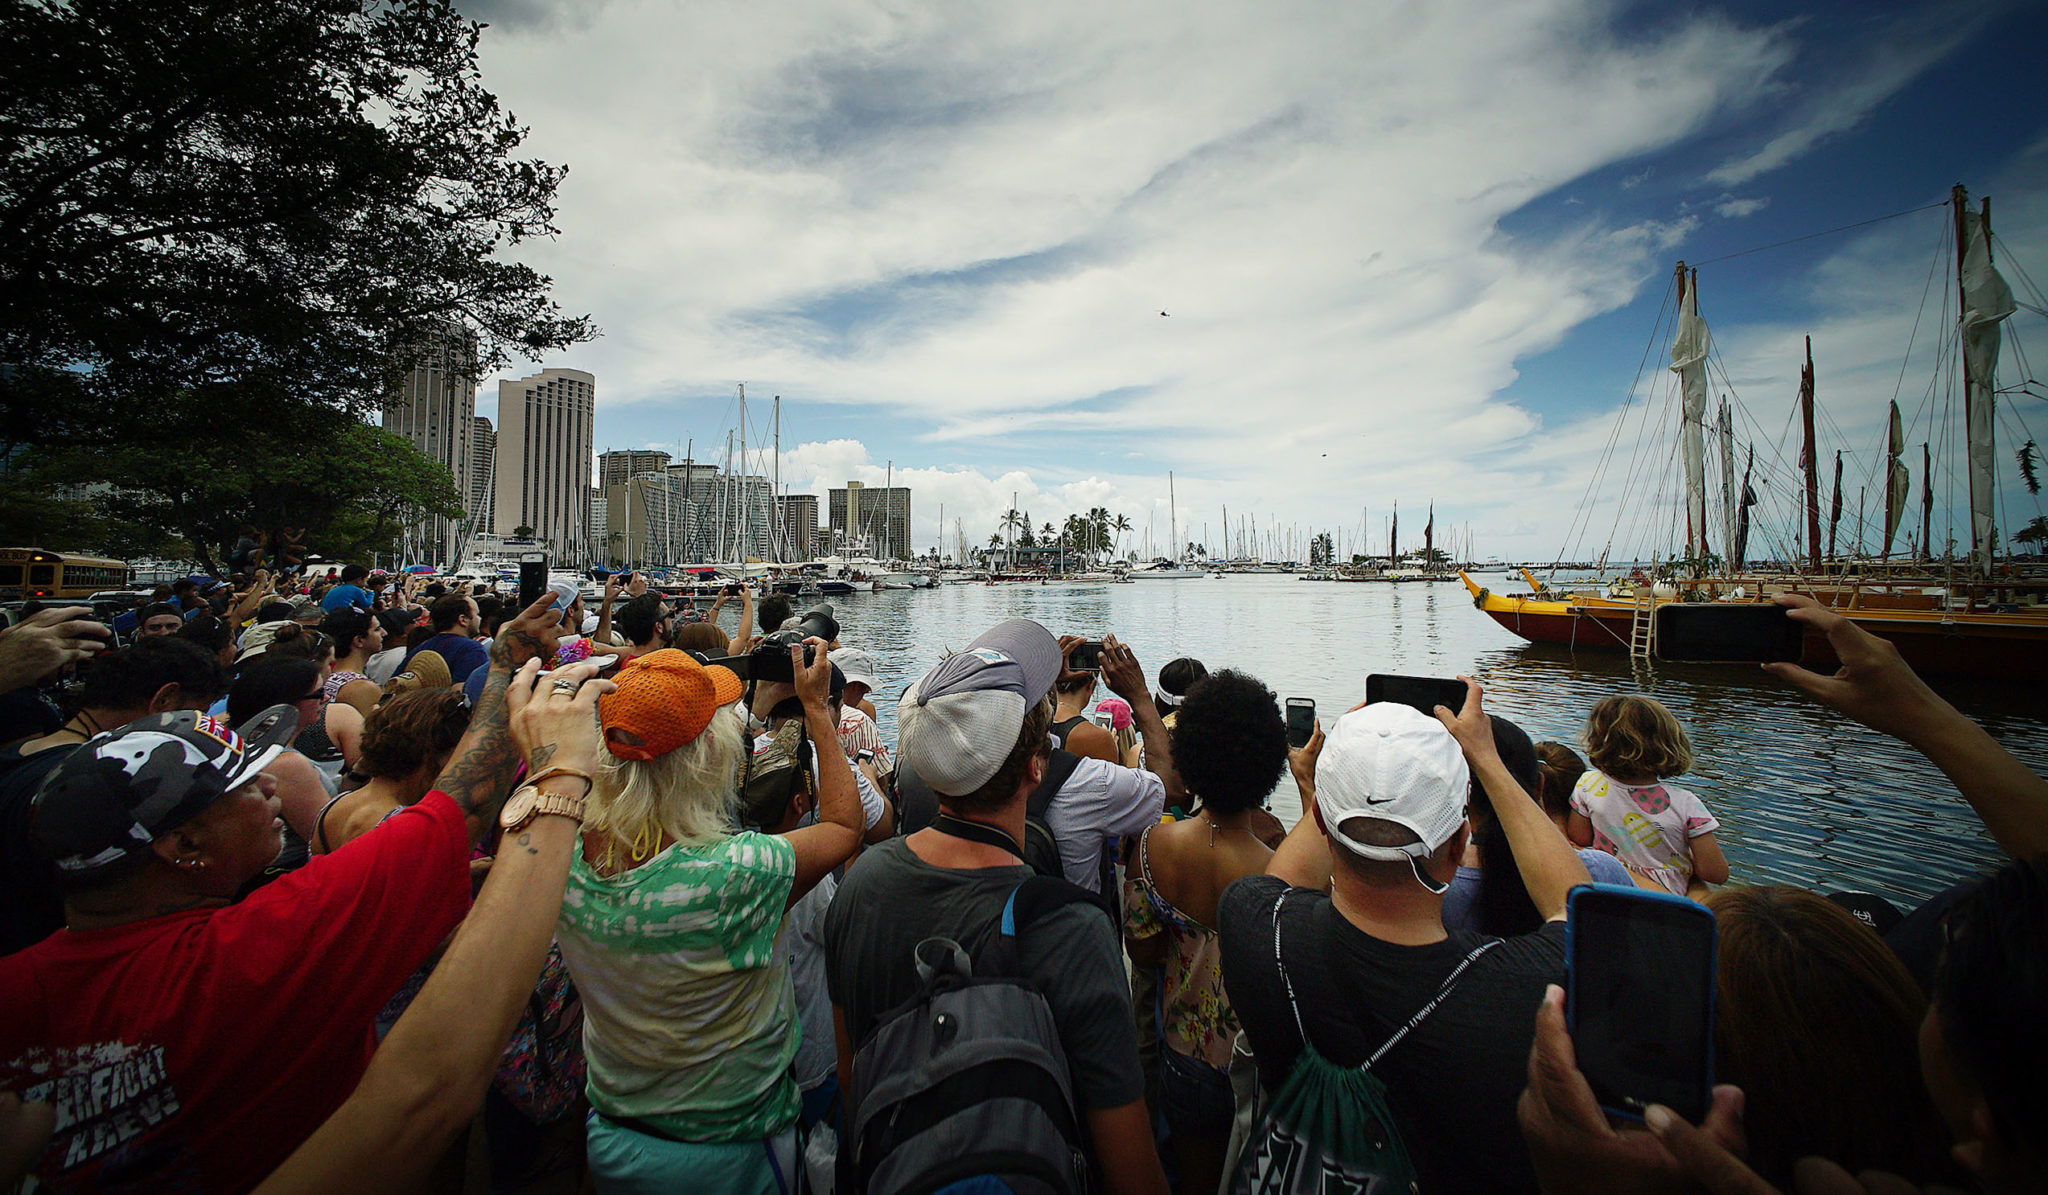 <p>Cellphones rise to record the arrival of Hokulea. The ceremony that followed included speeches by Gov. David Ige, Mayor Kirk Caldwell and Polynesian Voyaging Society president Nainoa Thompson. / Cory Lum</p>